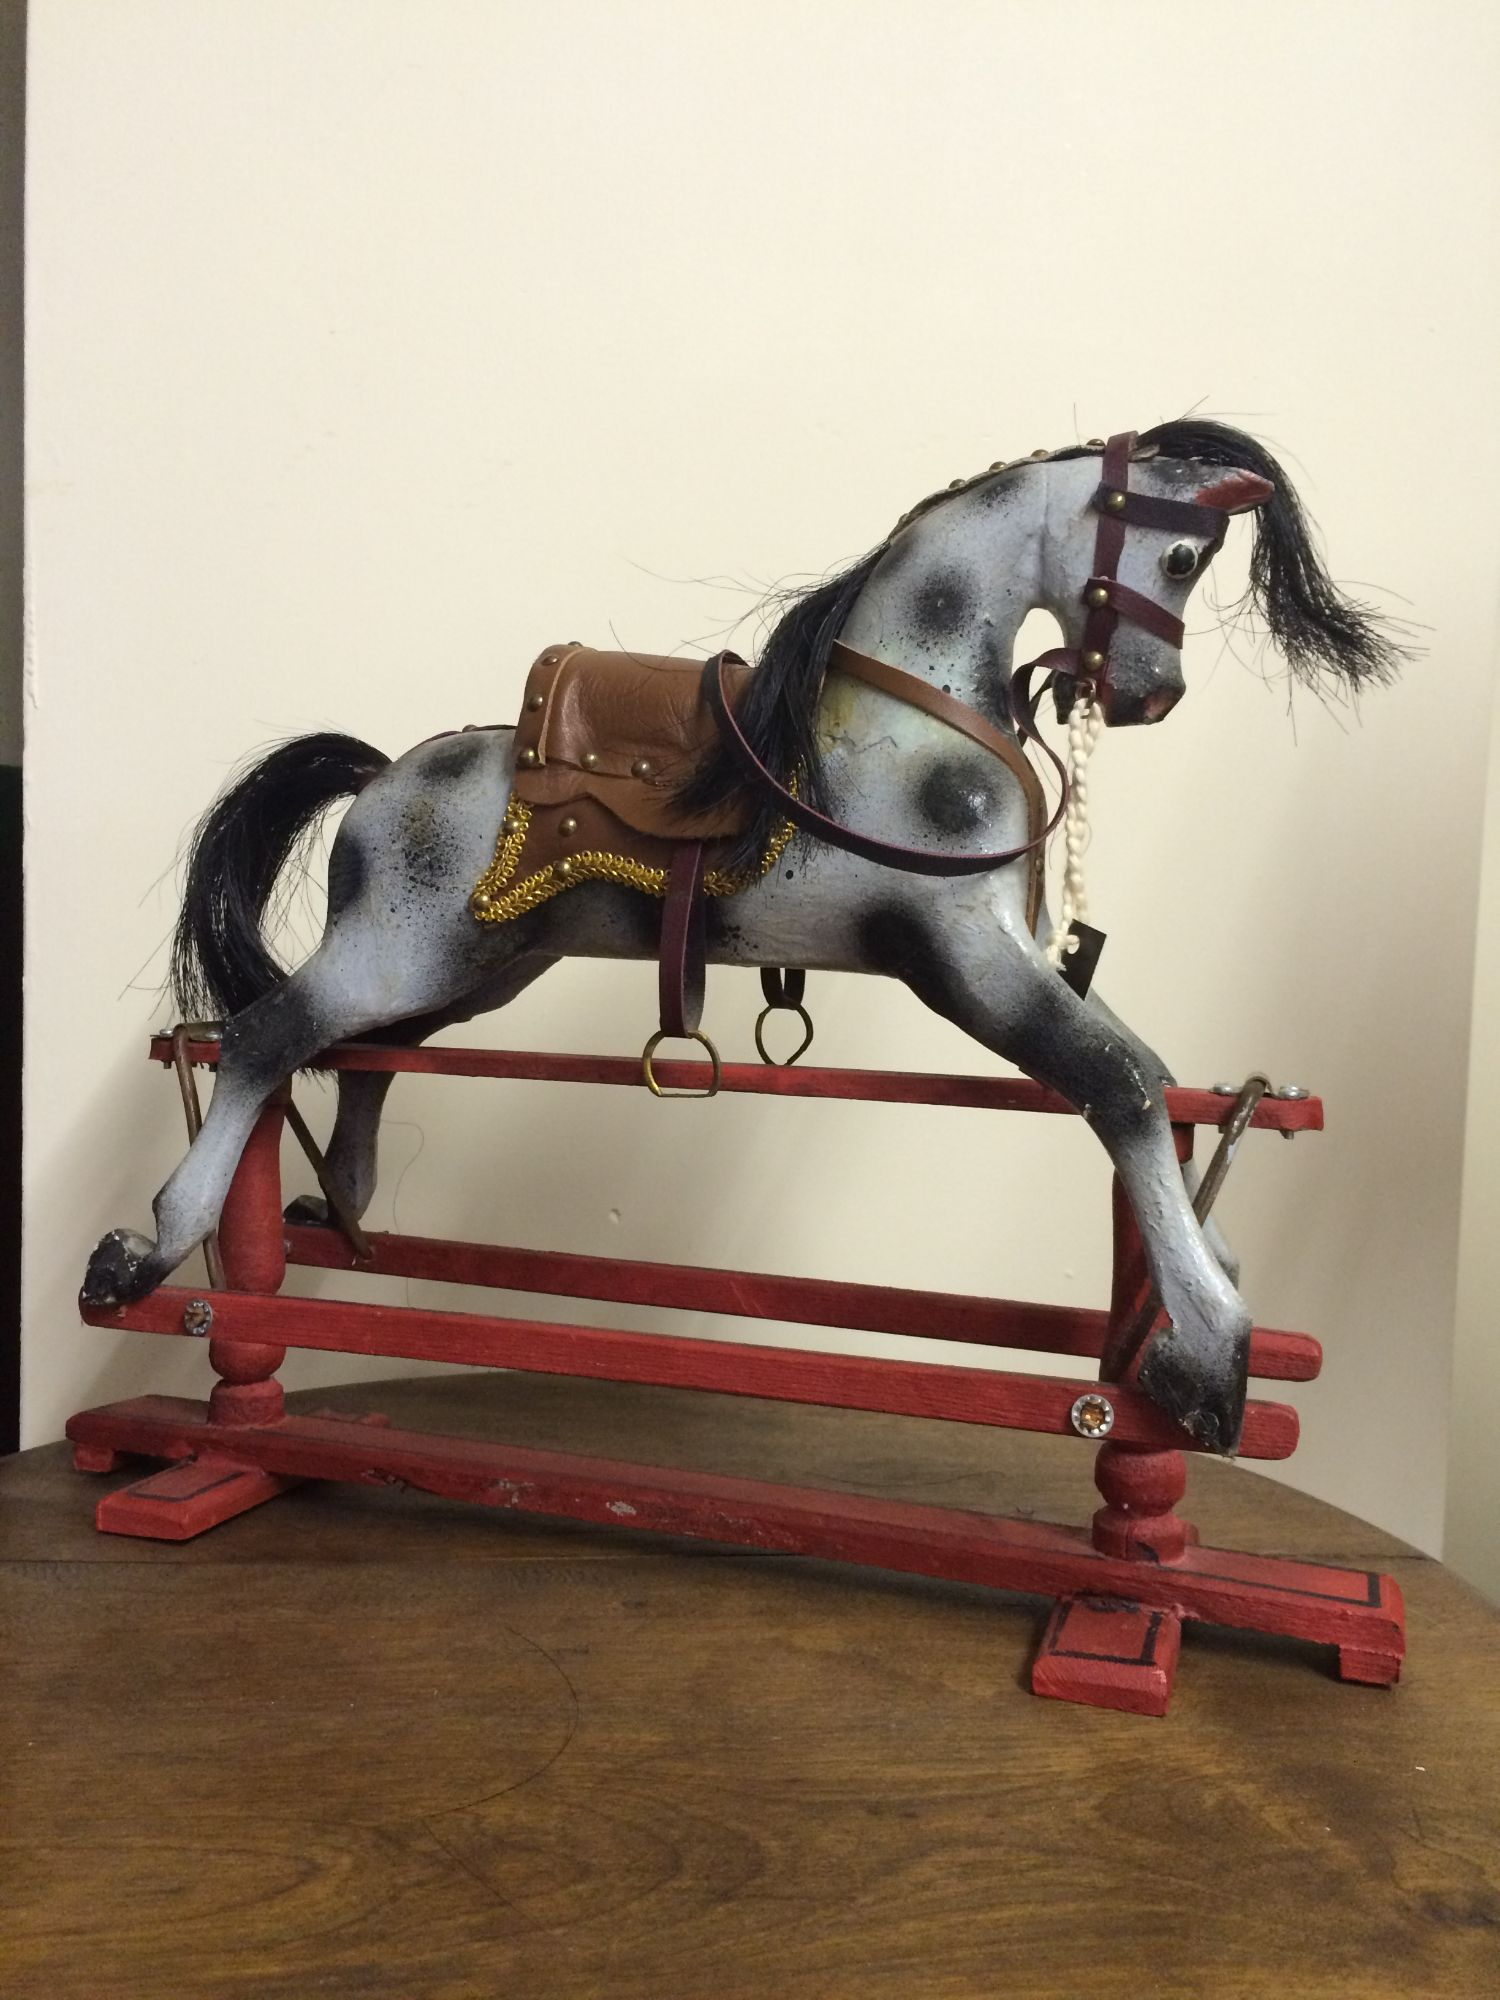 A miniature rocking horse by David Postin